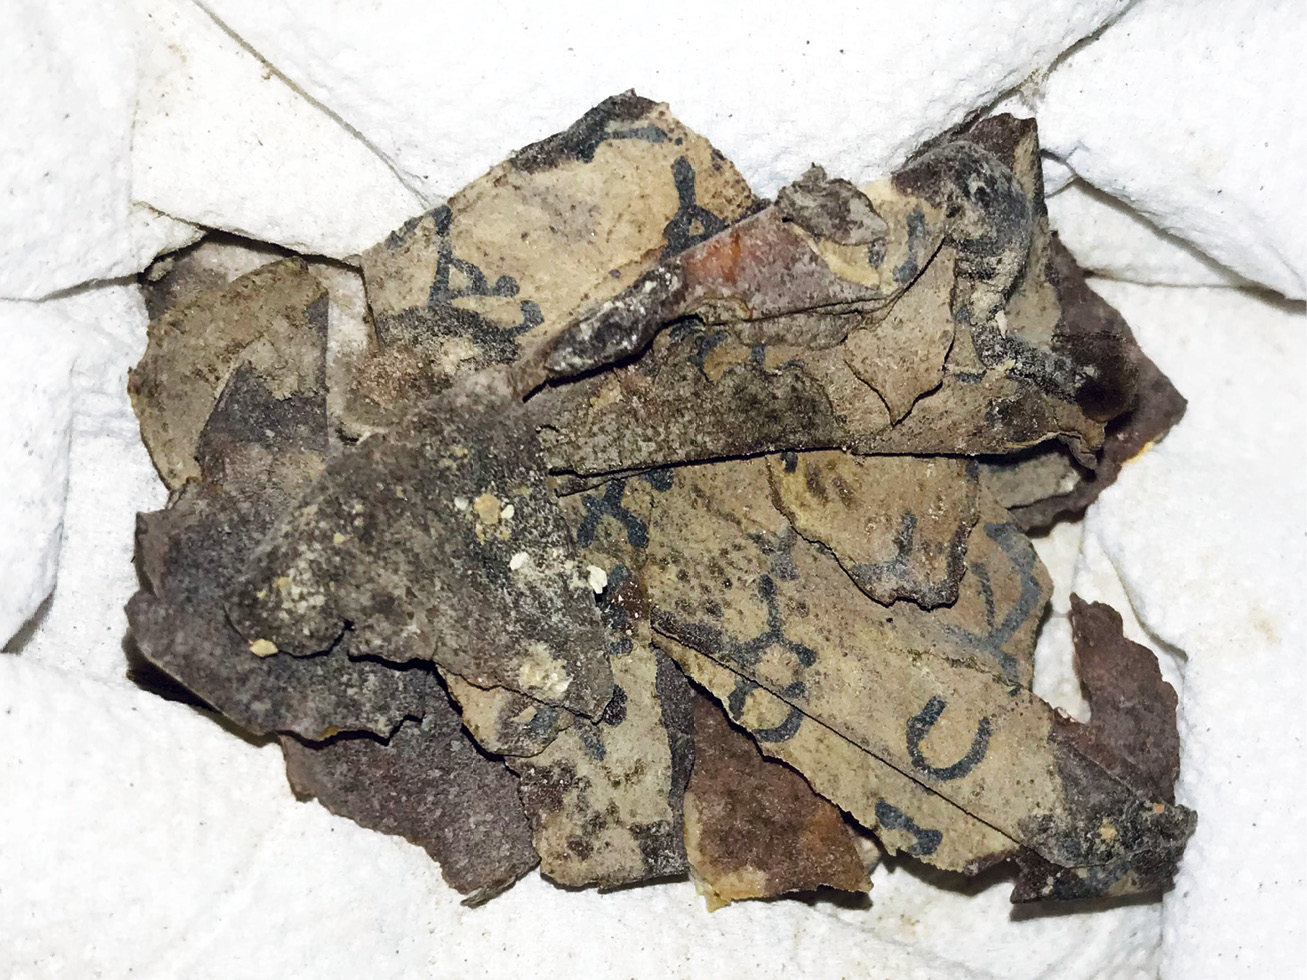 ABOVE LEFT The fragments of a biblical scroll discovered in the Cave of Horror in the Judaean Desert.